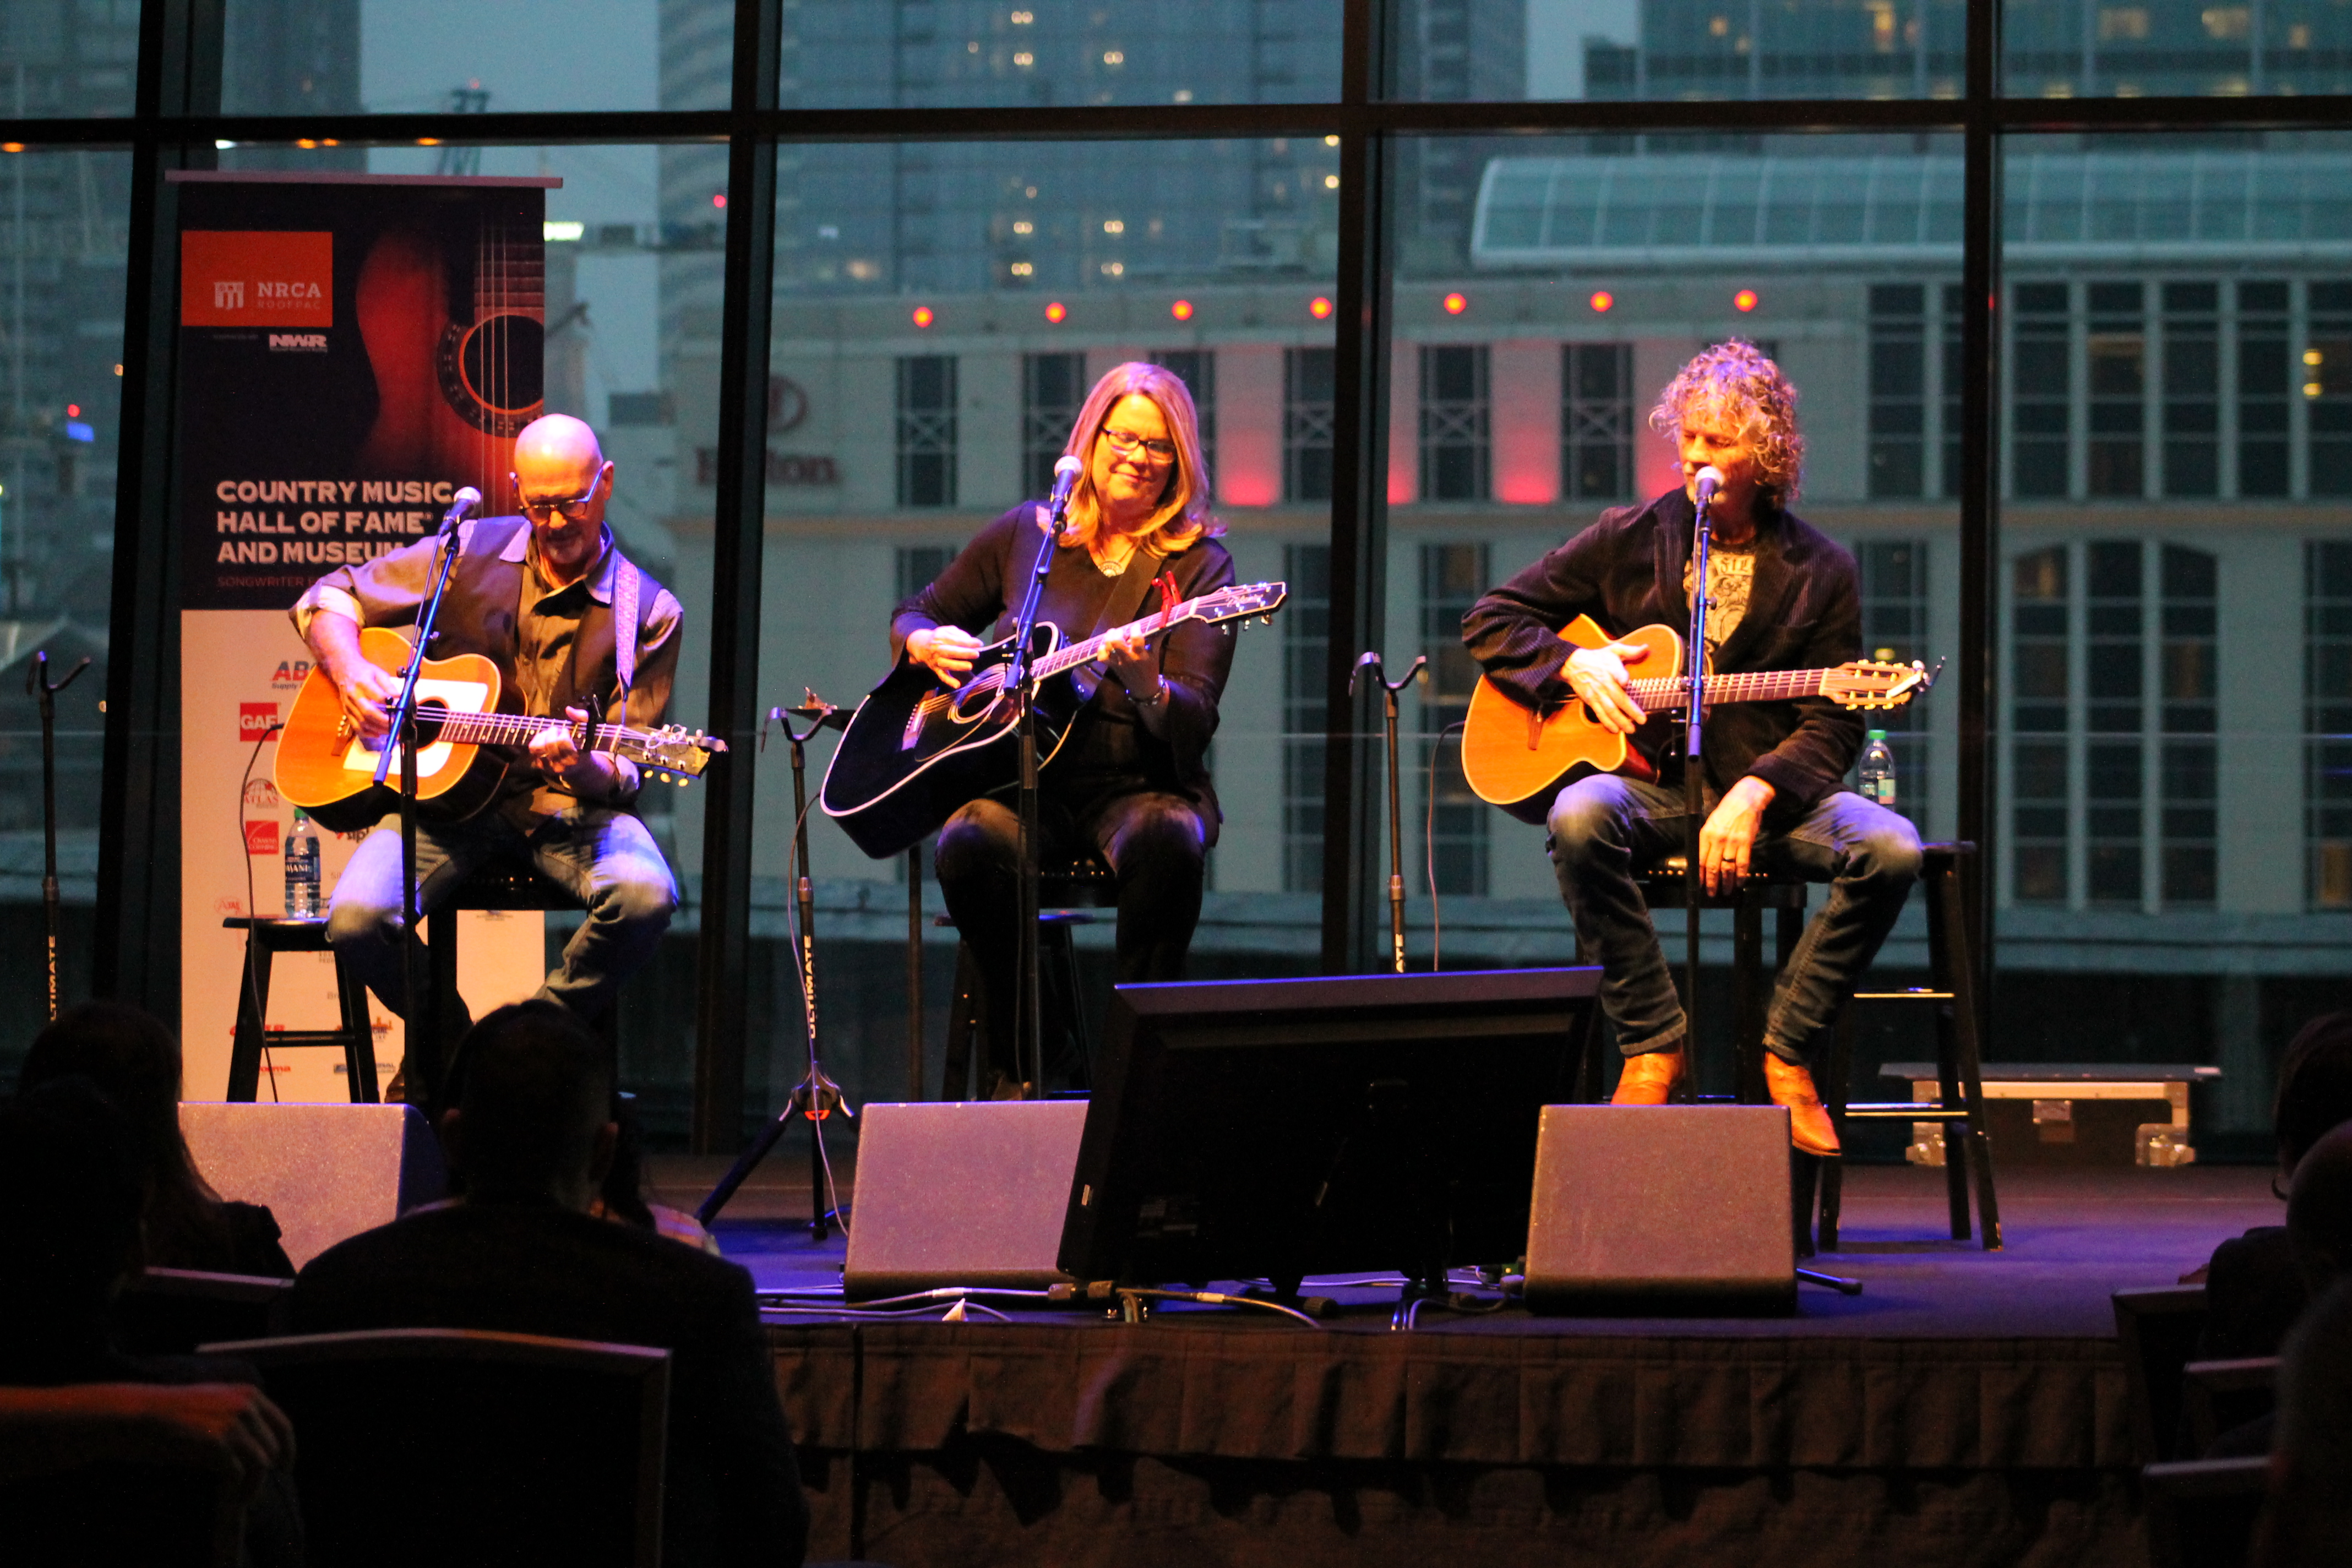 NRCA's ROOFPAC held a songwriter extravaganza event at the Country Music Hall of Fame® and Museum in Nashville, Tenn., during IRE.